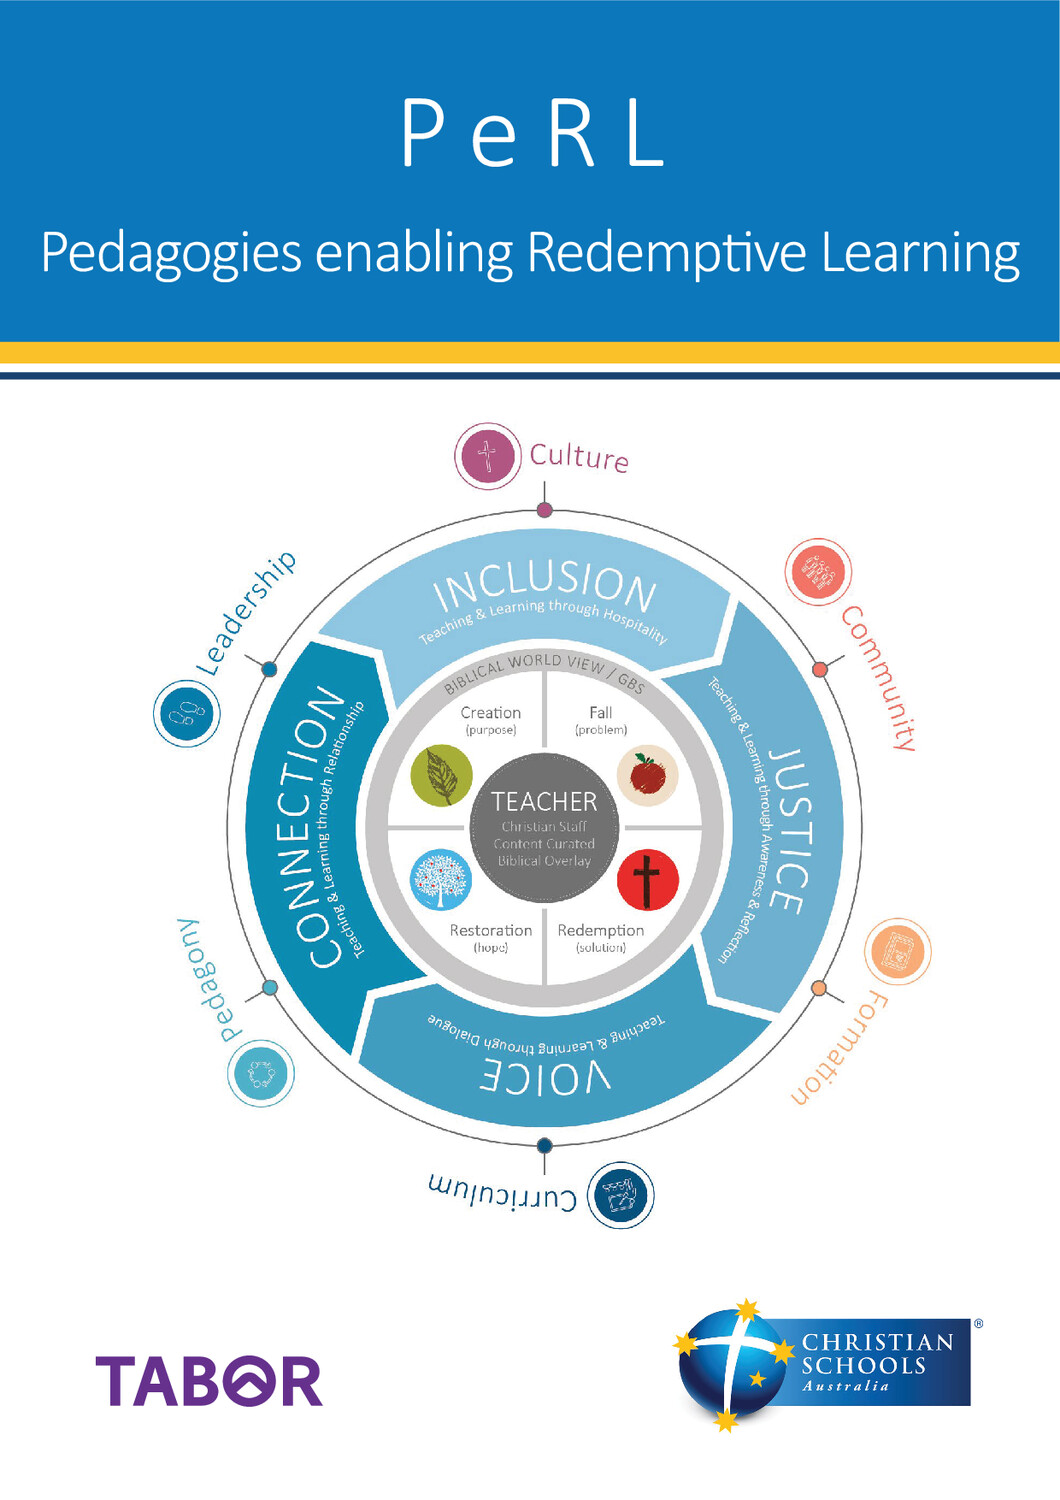 Pedagogies enabling Redemptive Learning